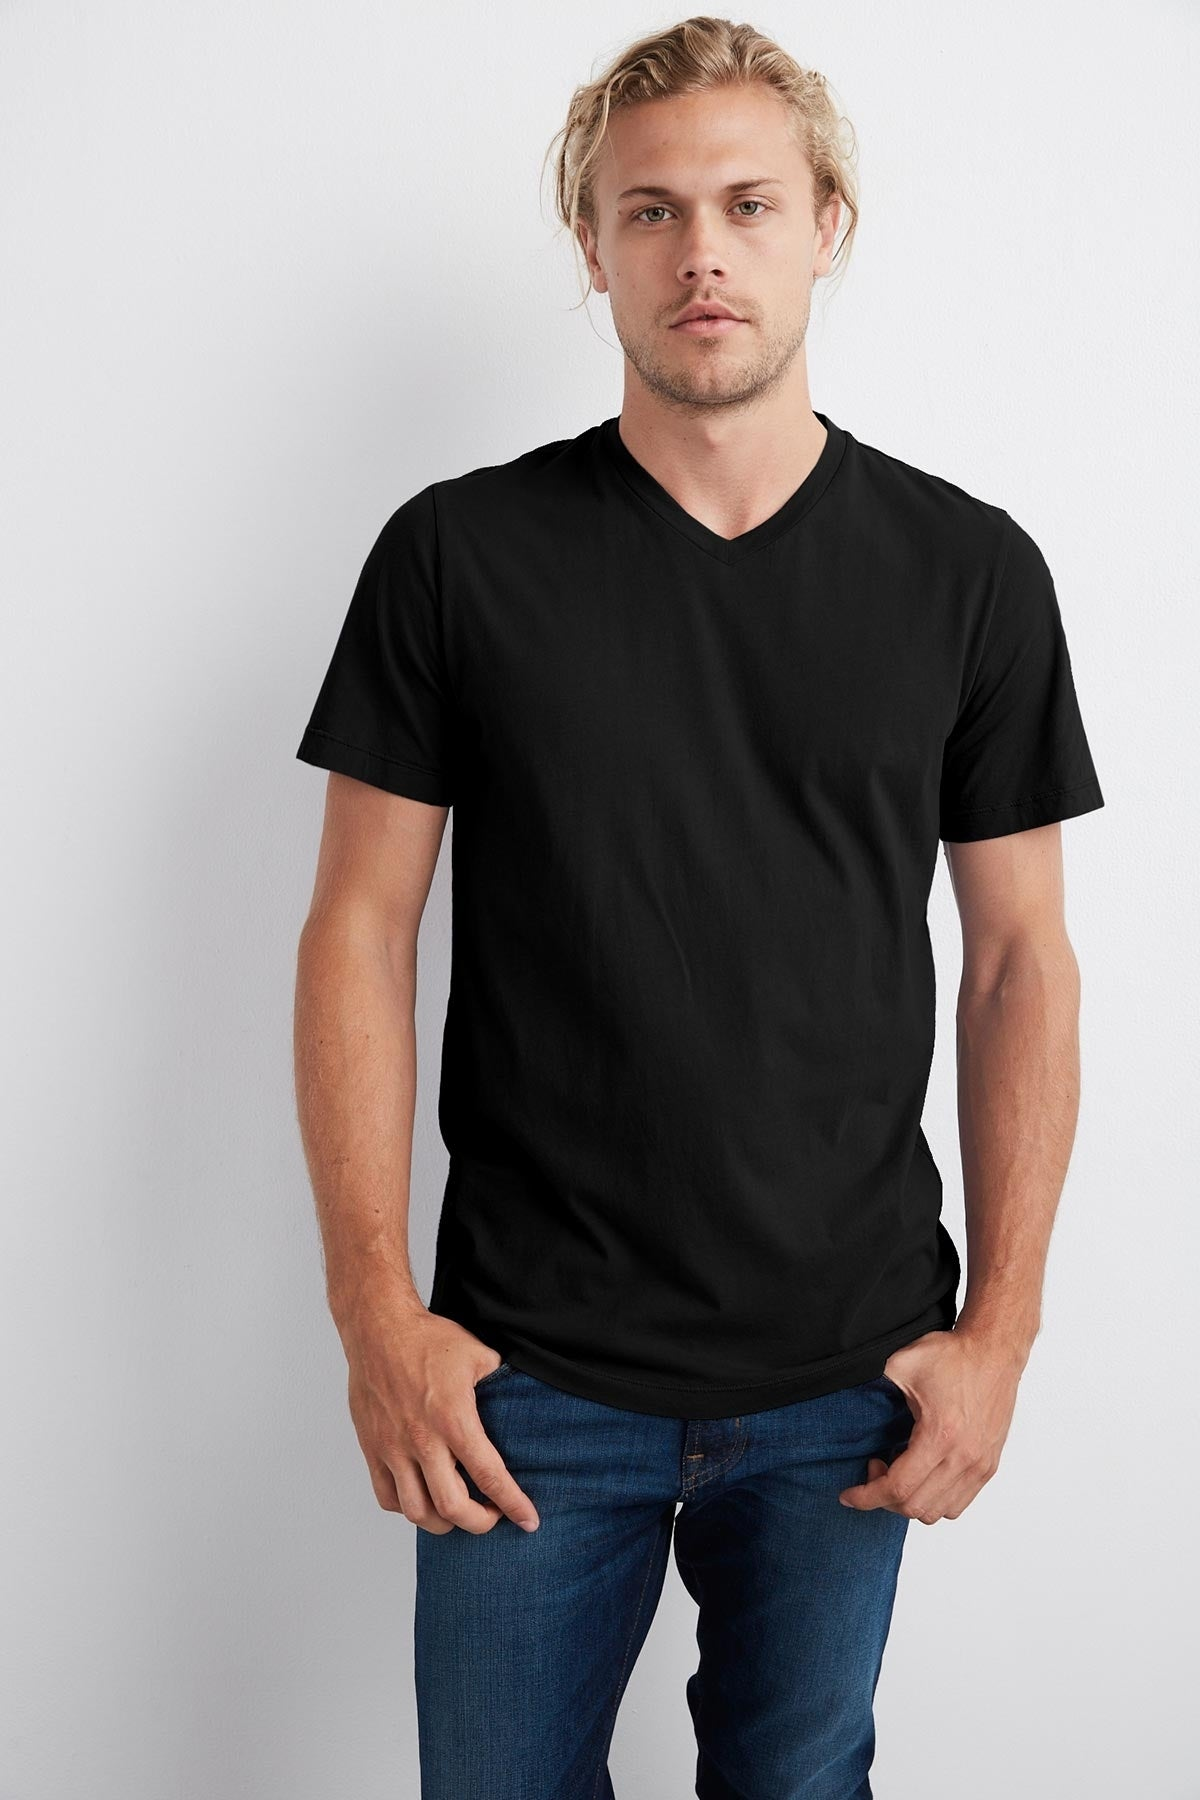 SAMSEN WHISPER CLASSIC V-NECK TEE IN BLACK